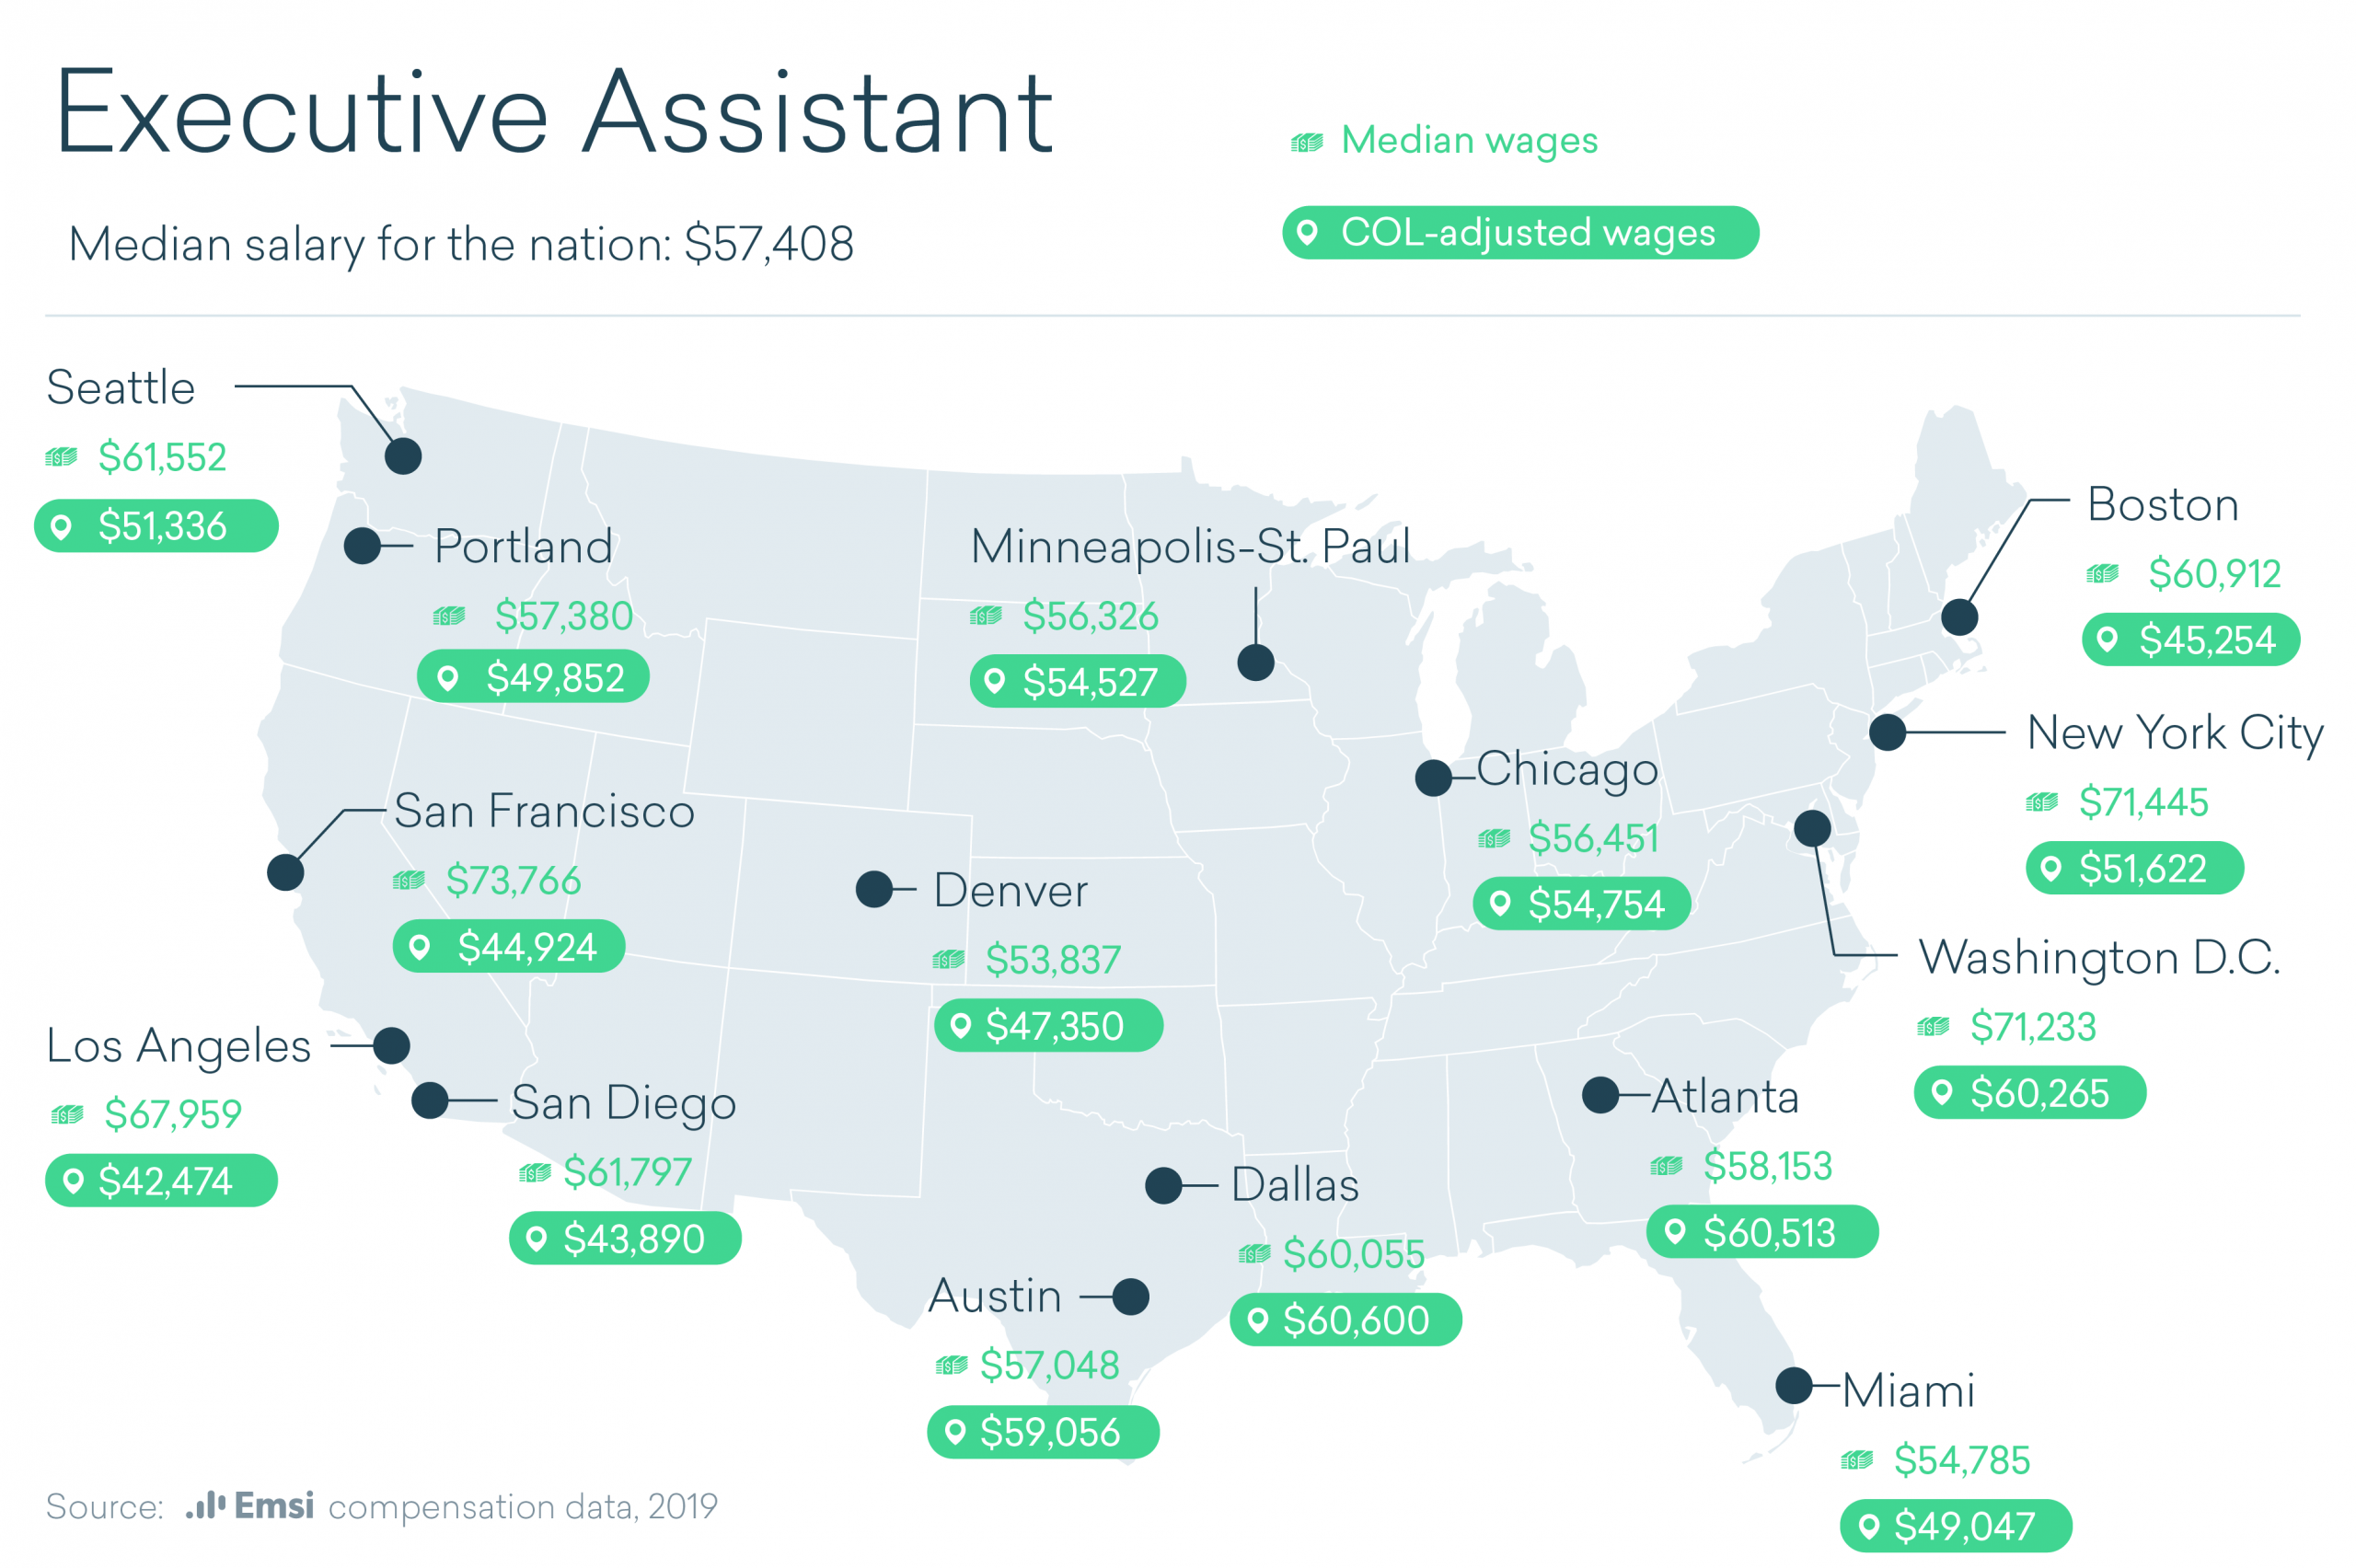 A U.S. map showing the median salary and cost of living-adjusted salary for executive assistants in Seattle, Portland, San Francisco, Los Angeles, San Diego, Denver, Austin, Dallas, Minneapolis-St. Paul, Chicago, Atlanta, Miami, Washington D.C., New York City, and Boston.